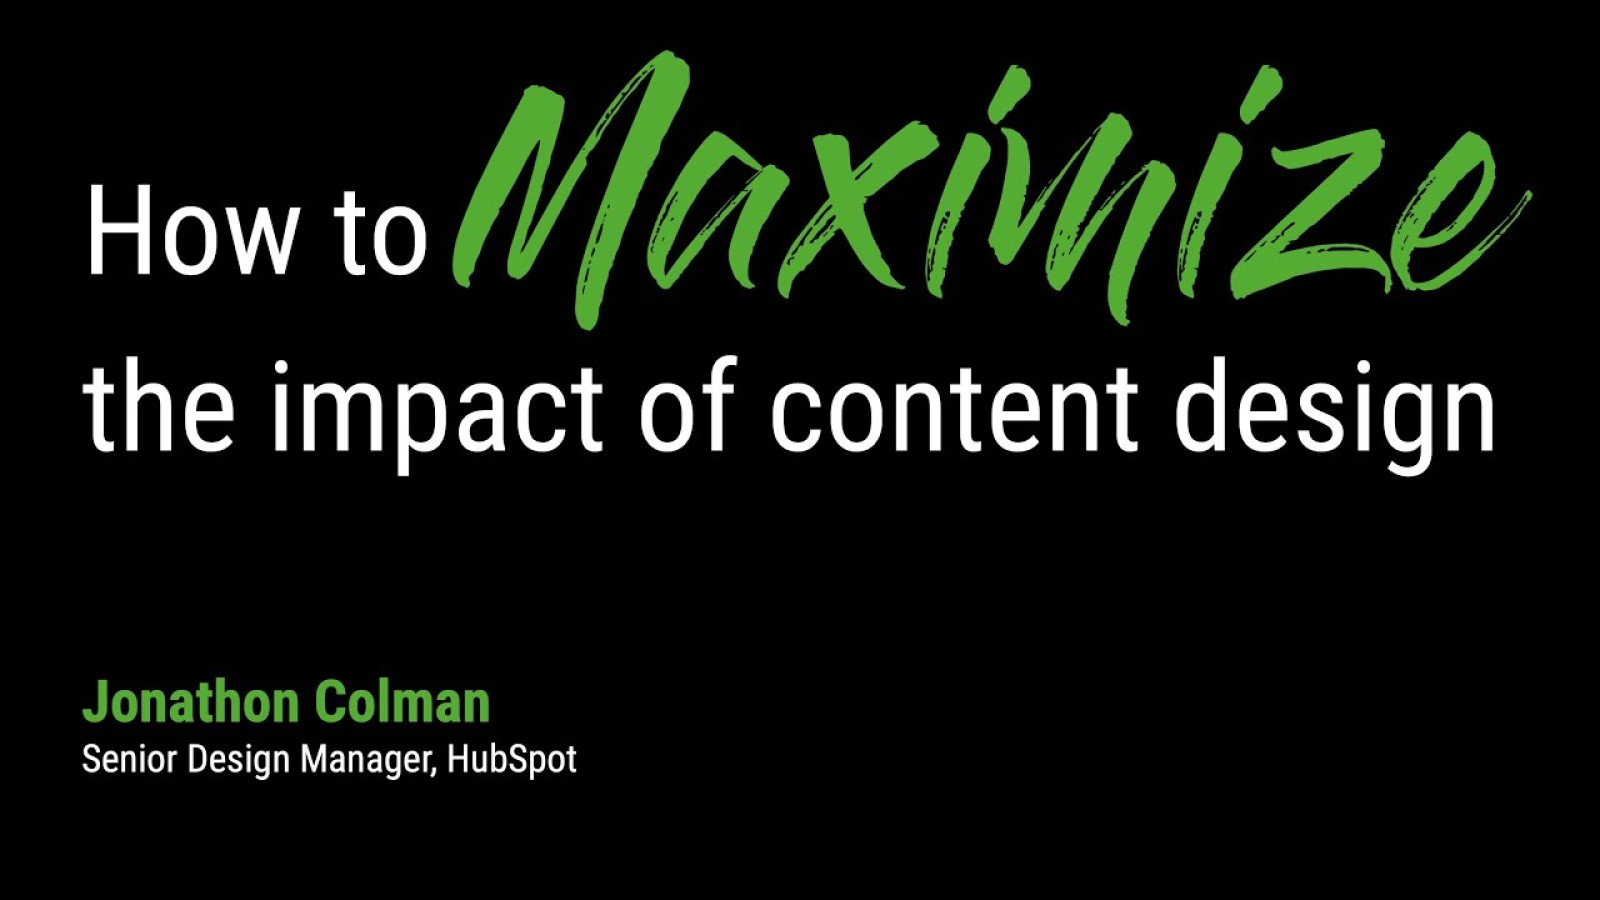 Keynote: How to maximize the impact of content design